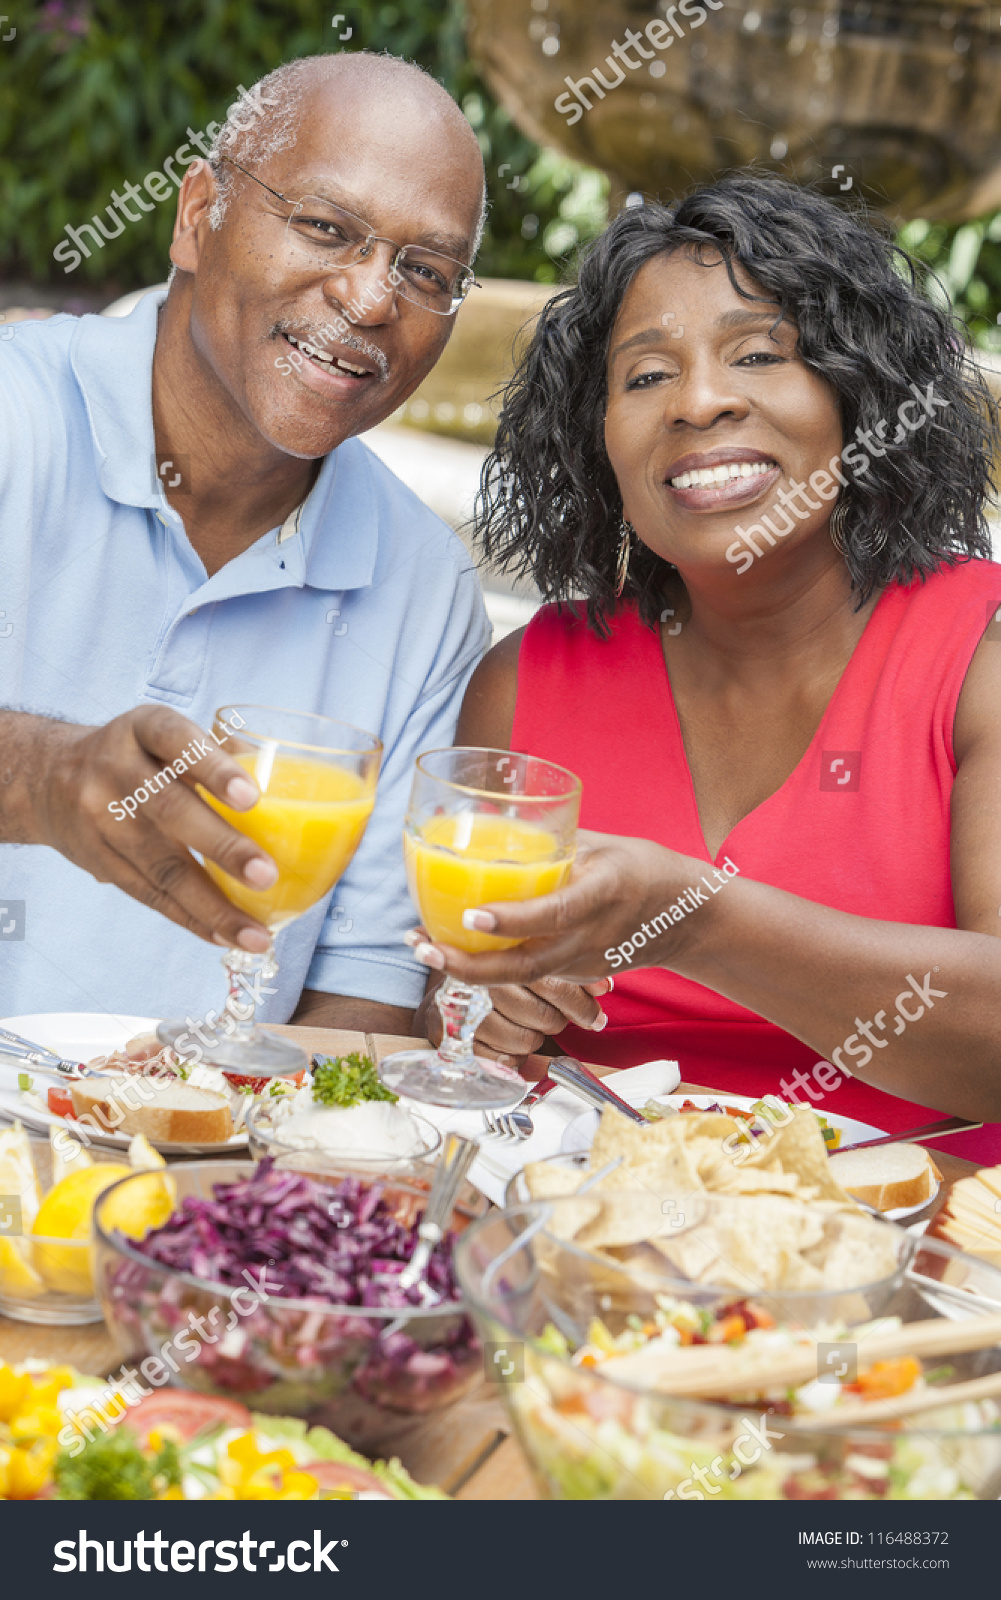 African American Senior Citizens Eating